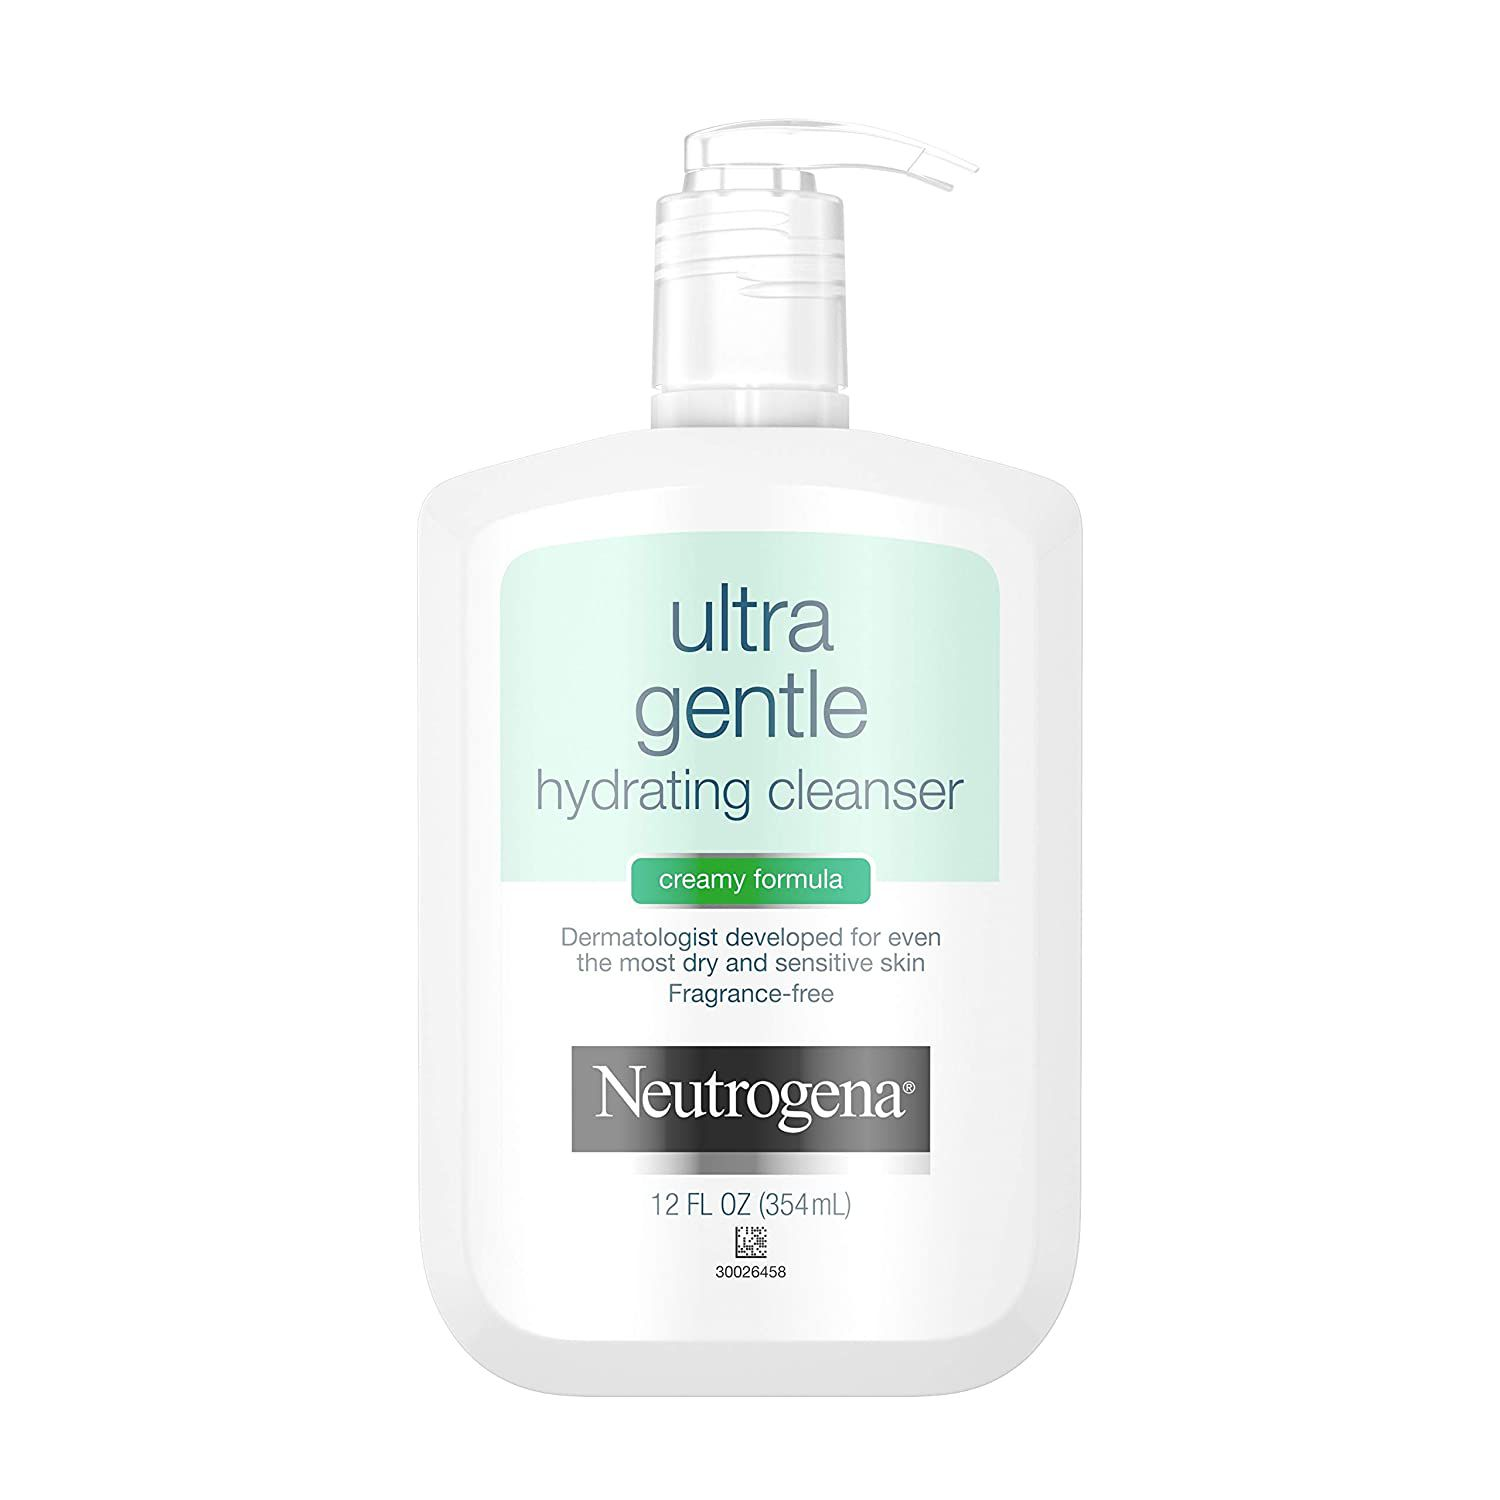 Neutrogena Ultra Gentle Hydrating Daily Facial Cleanser for Sensitive Skin